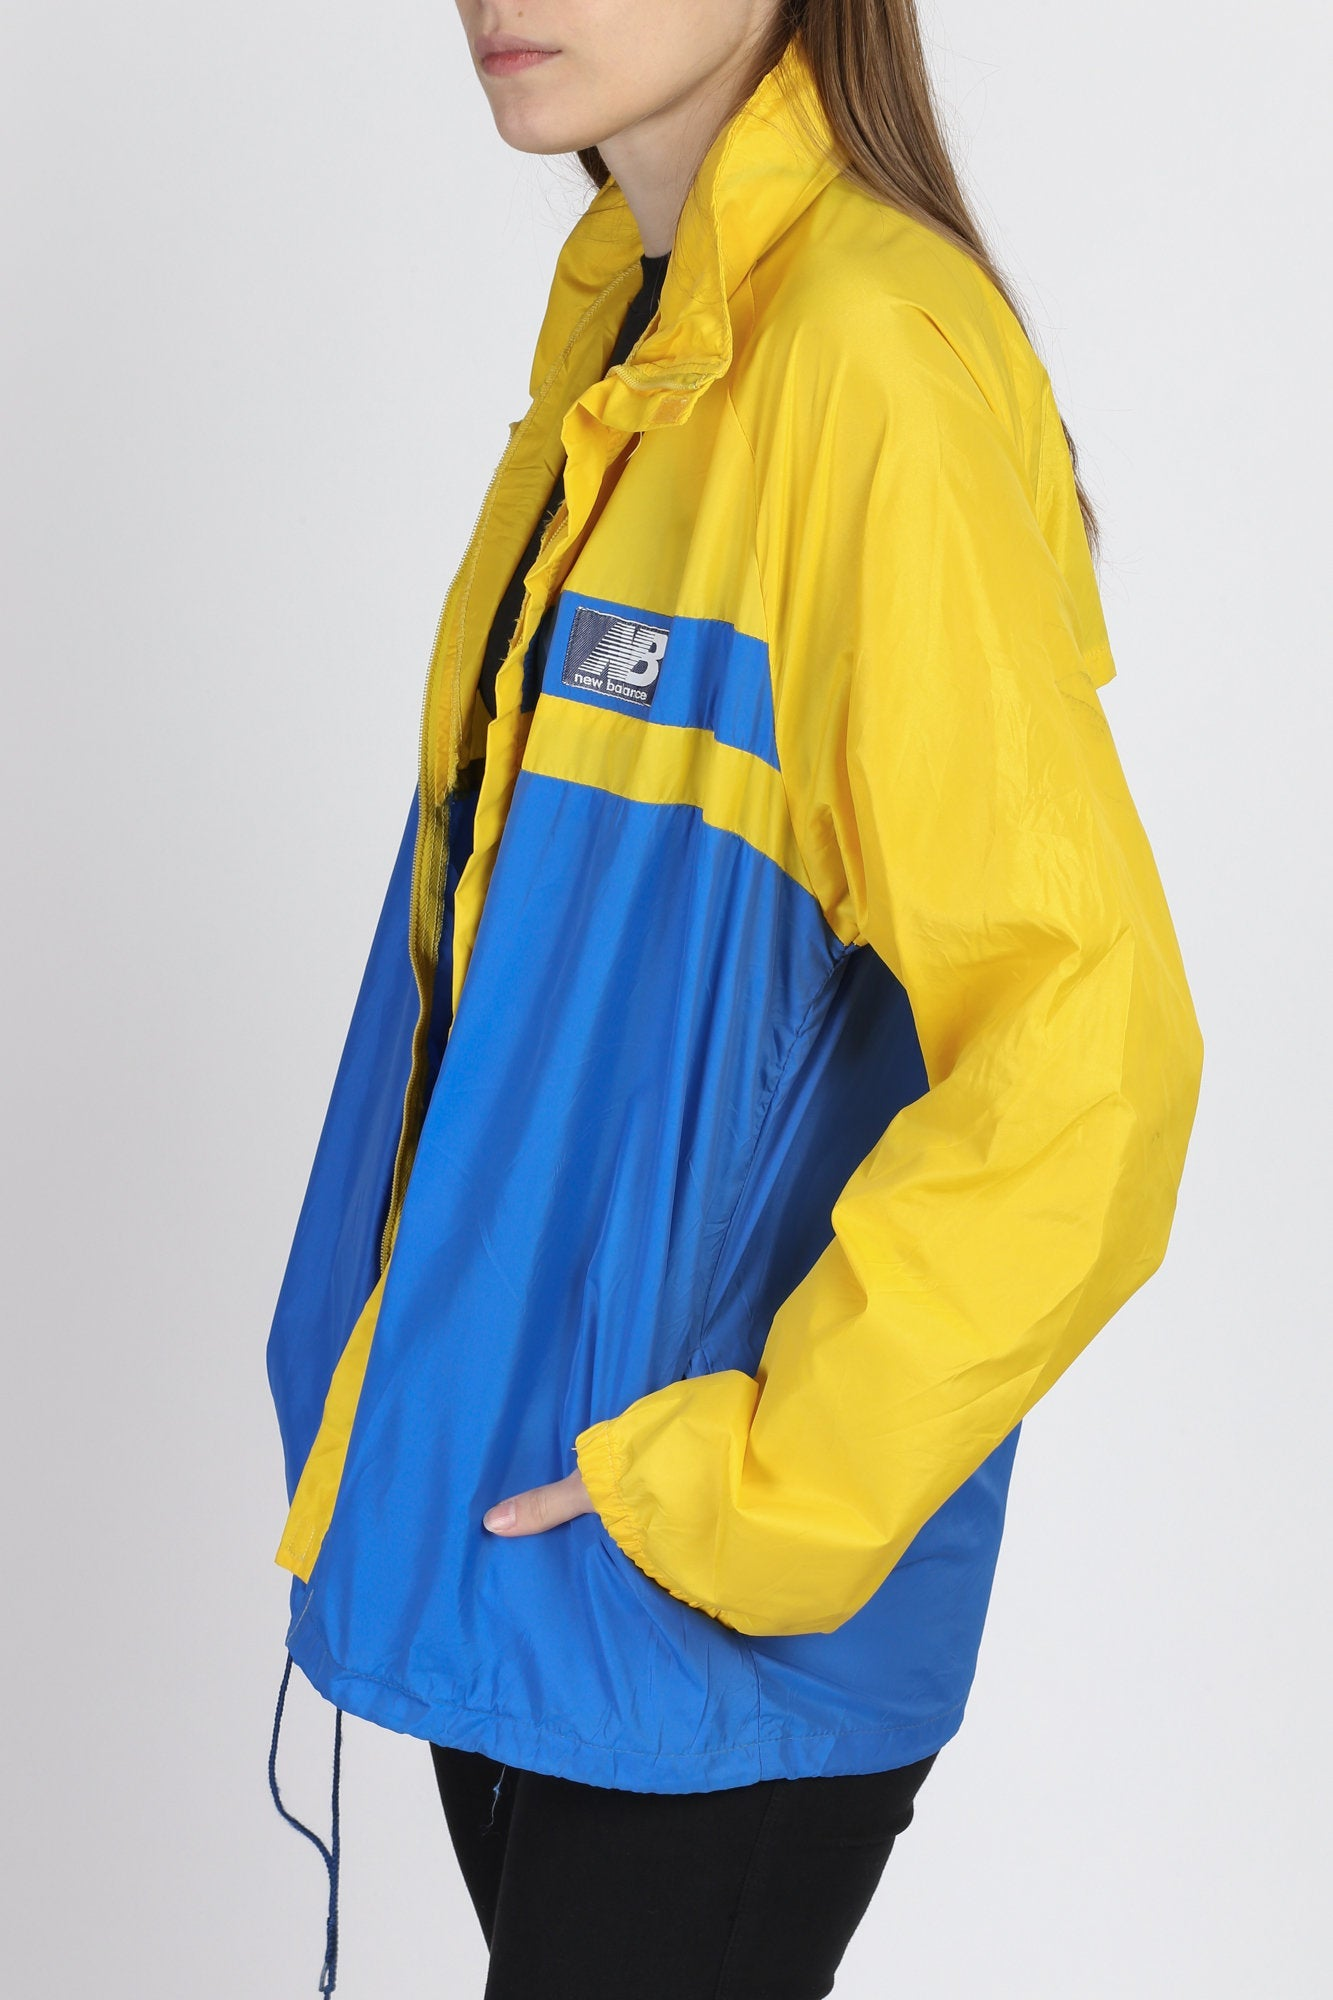 80s 90s New Balance Windbreaker - Men's Large